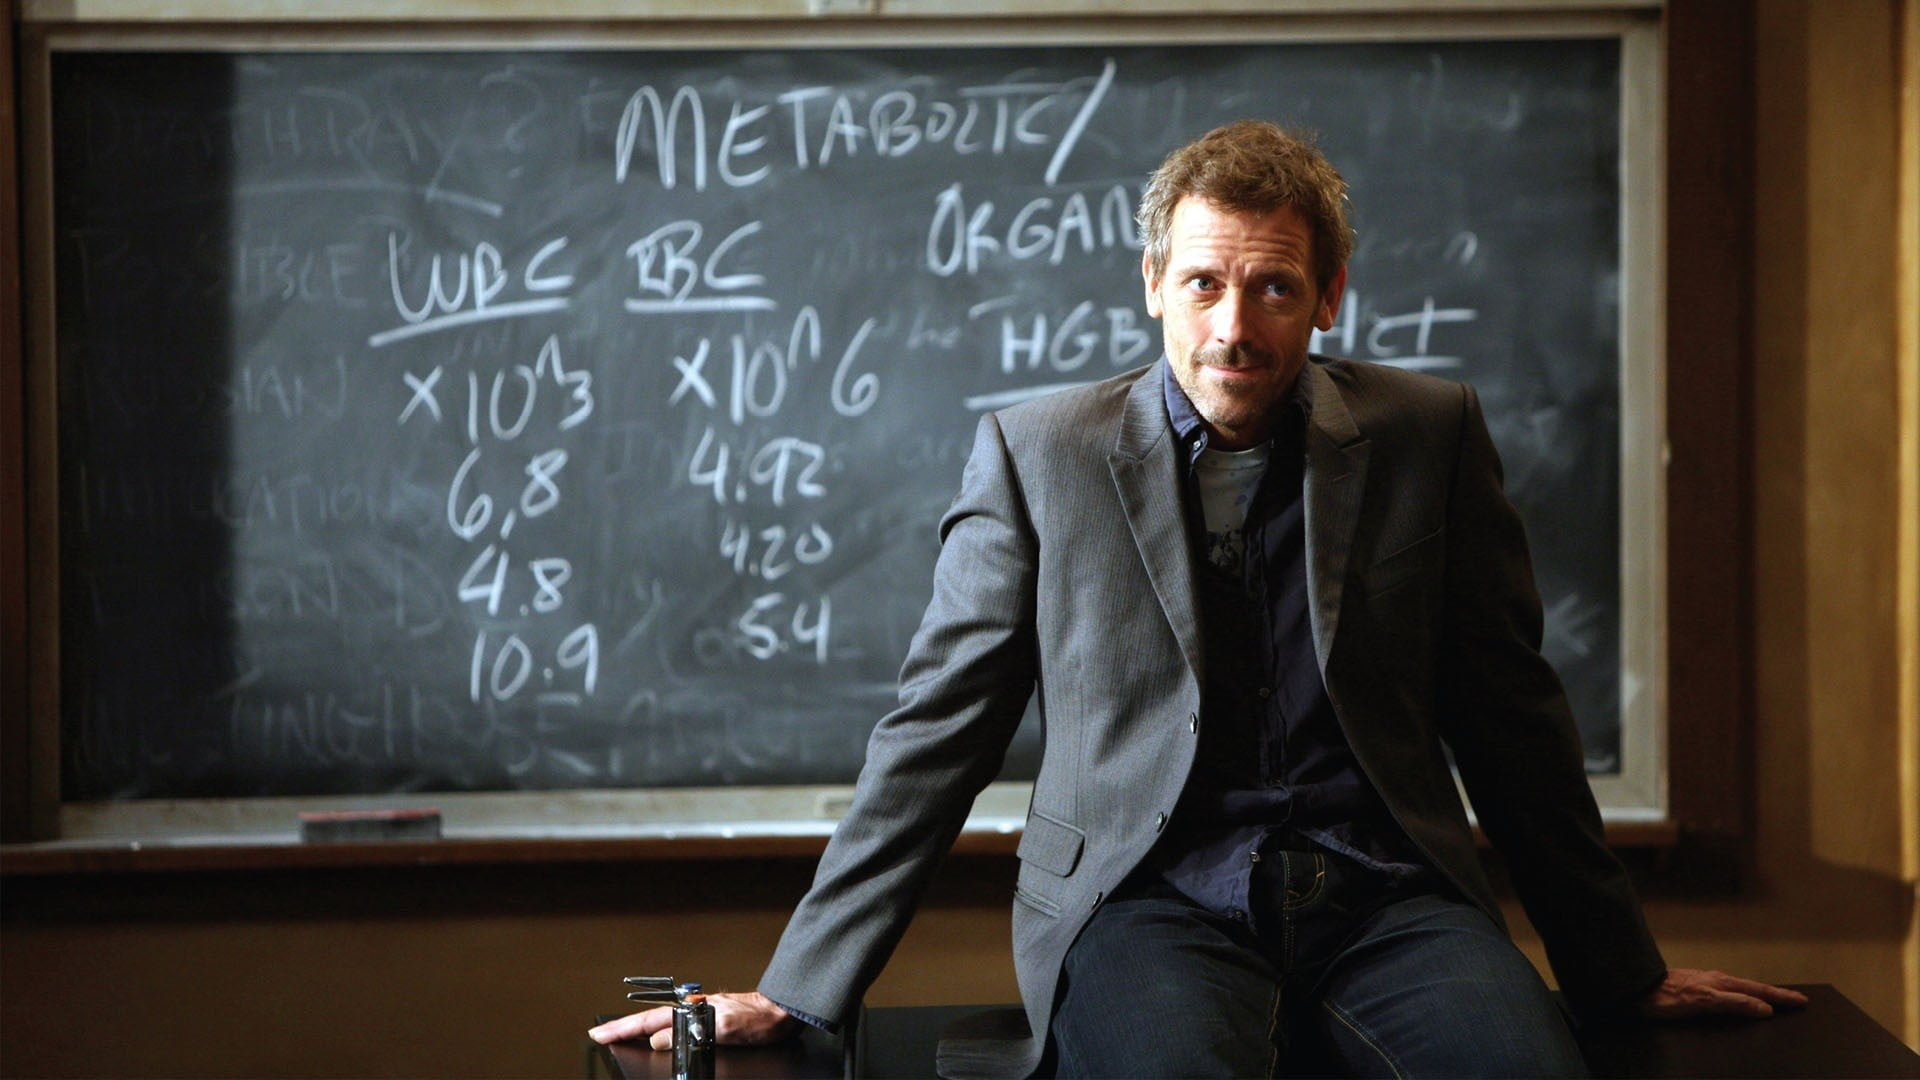 Happy 62nd birthday to Hugh Laurie.